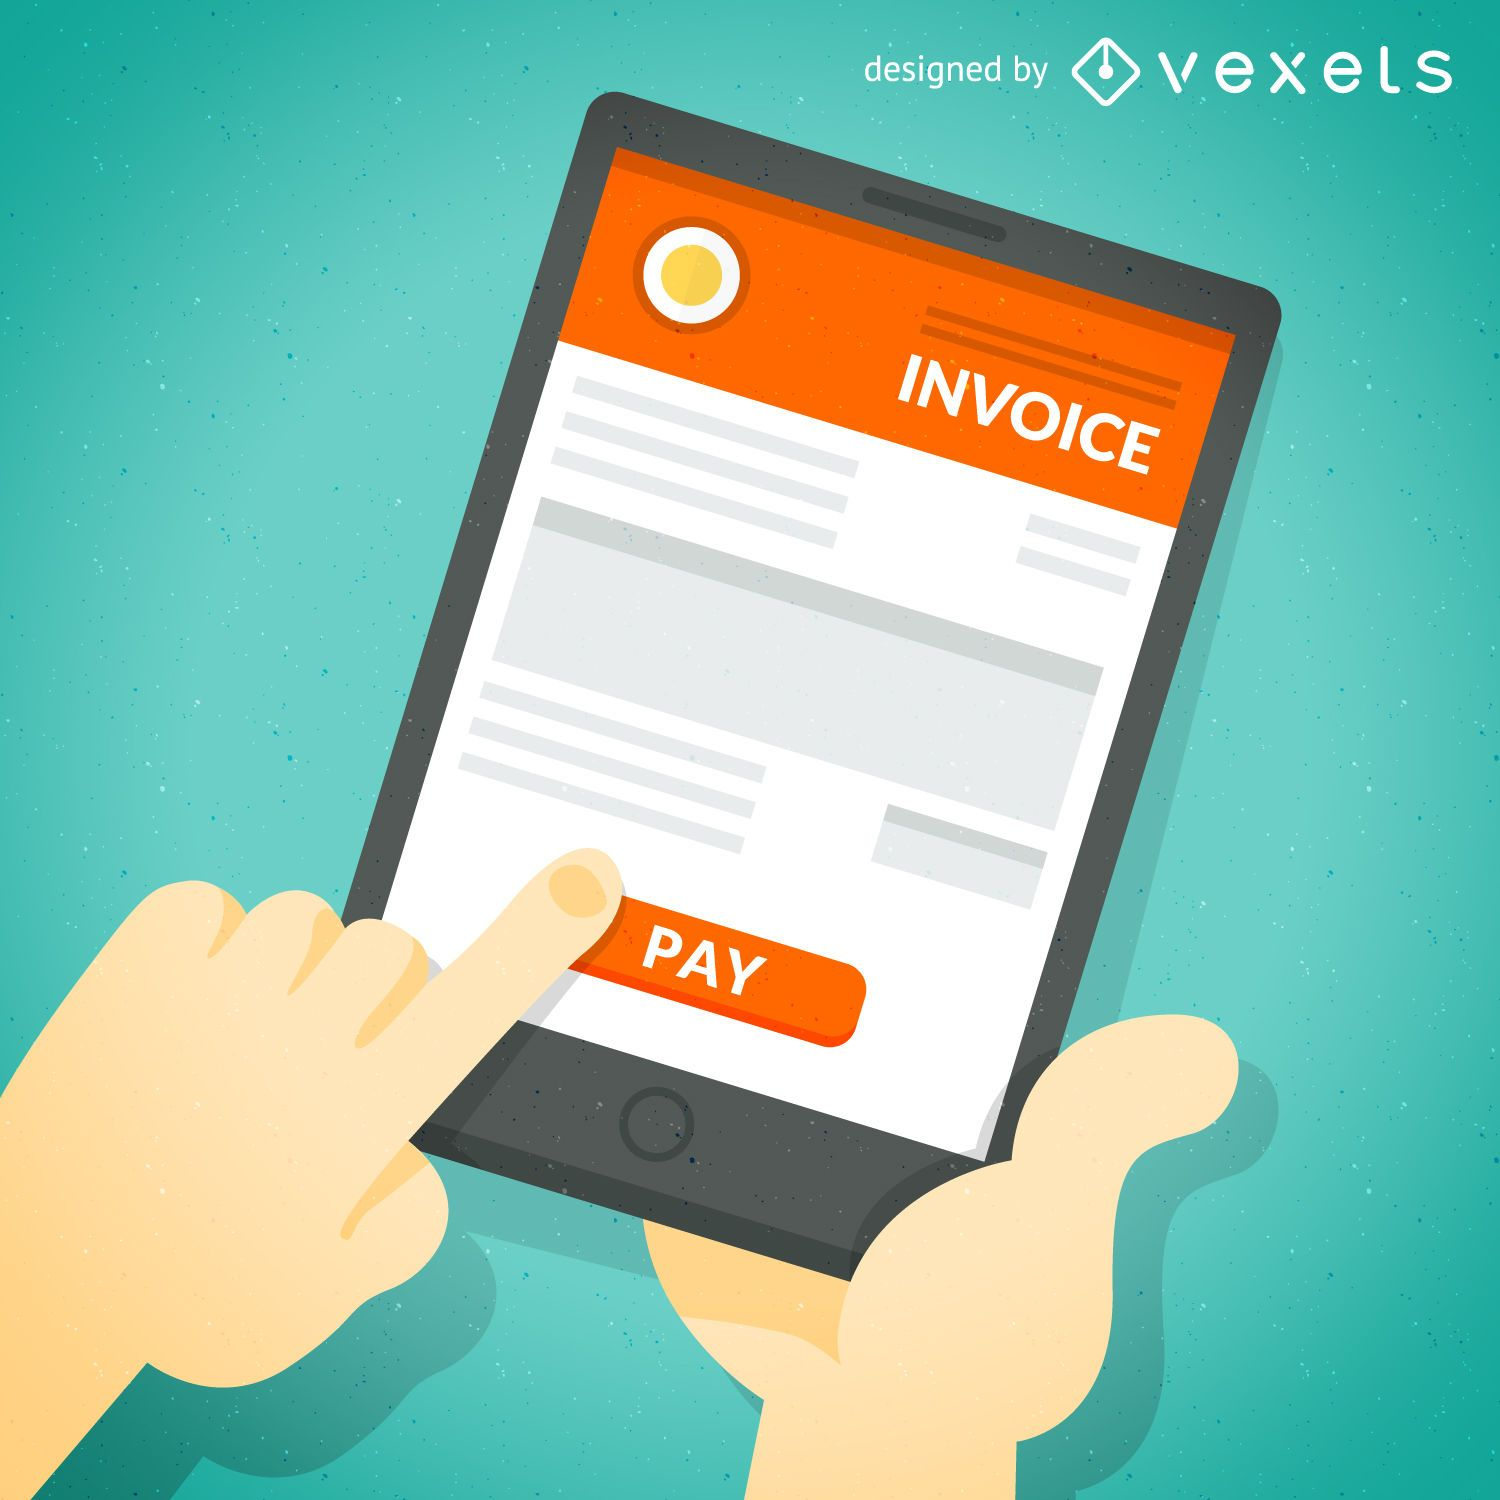 Online Invoice Payment On Tablet Screen Vector Download